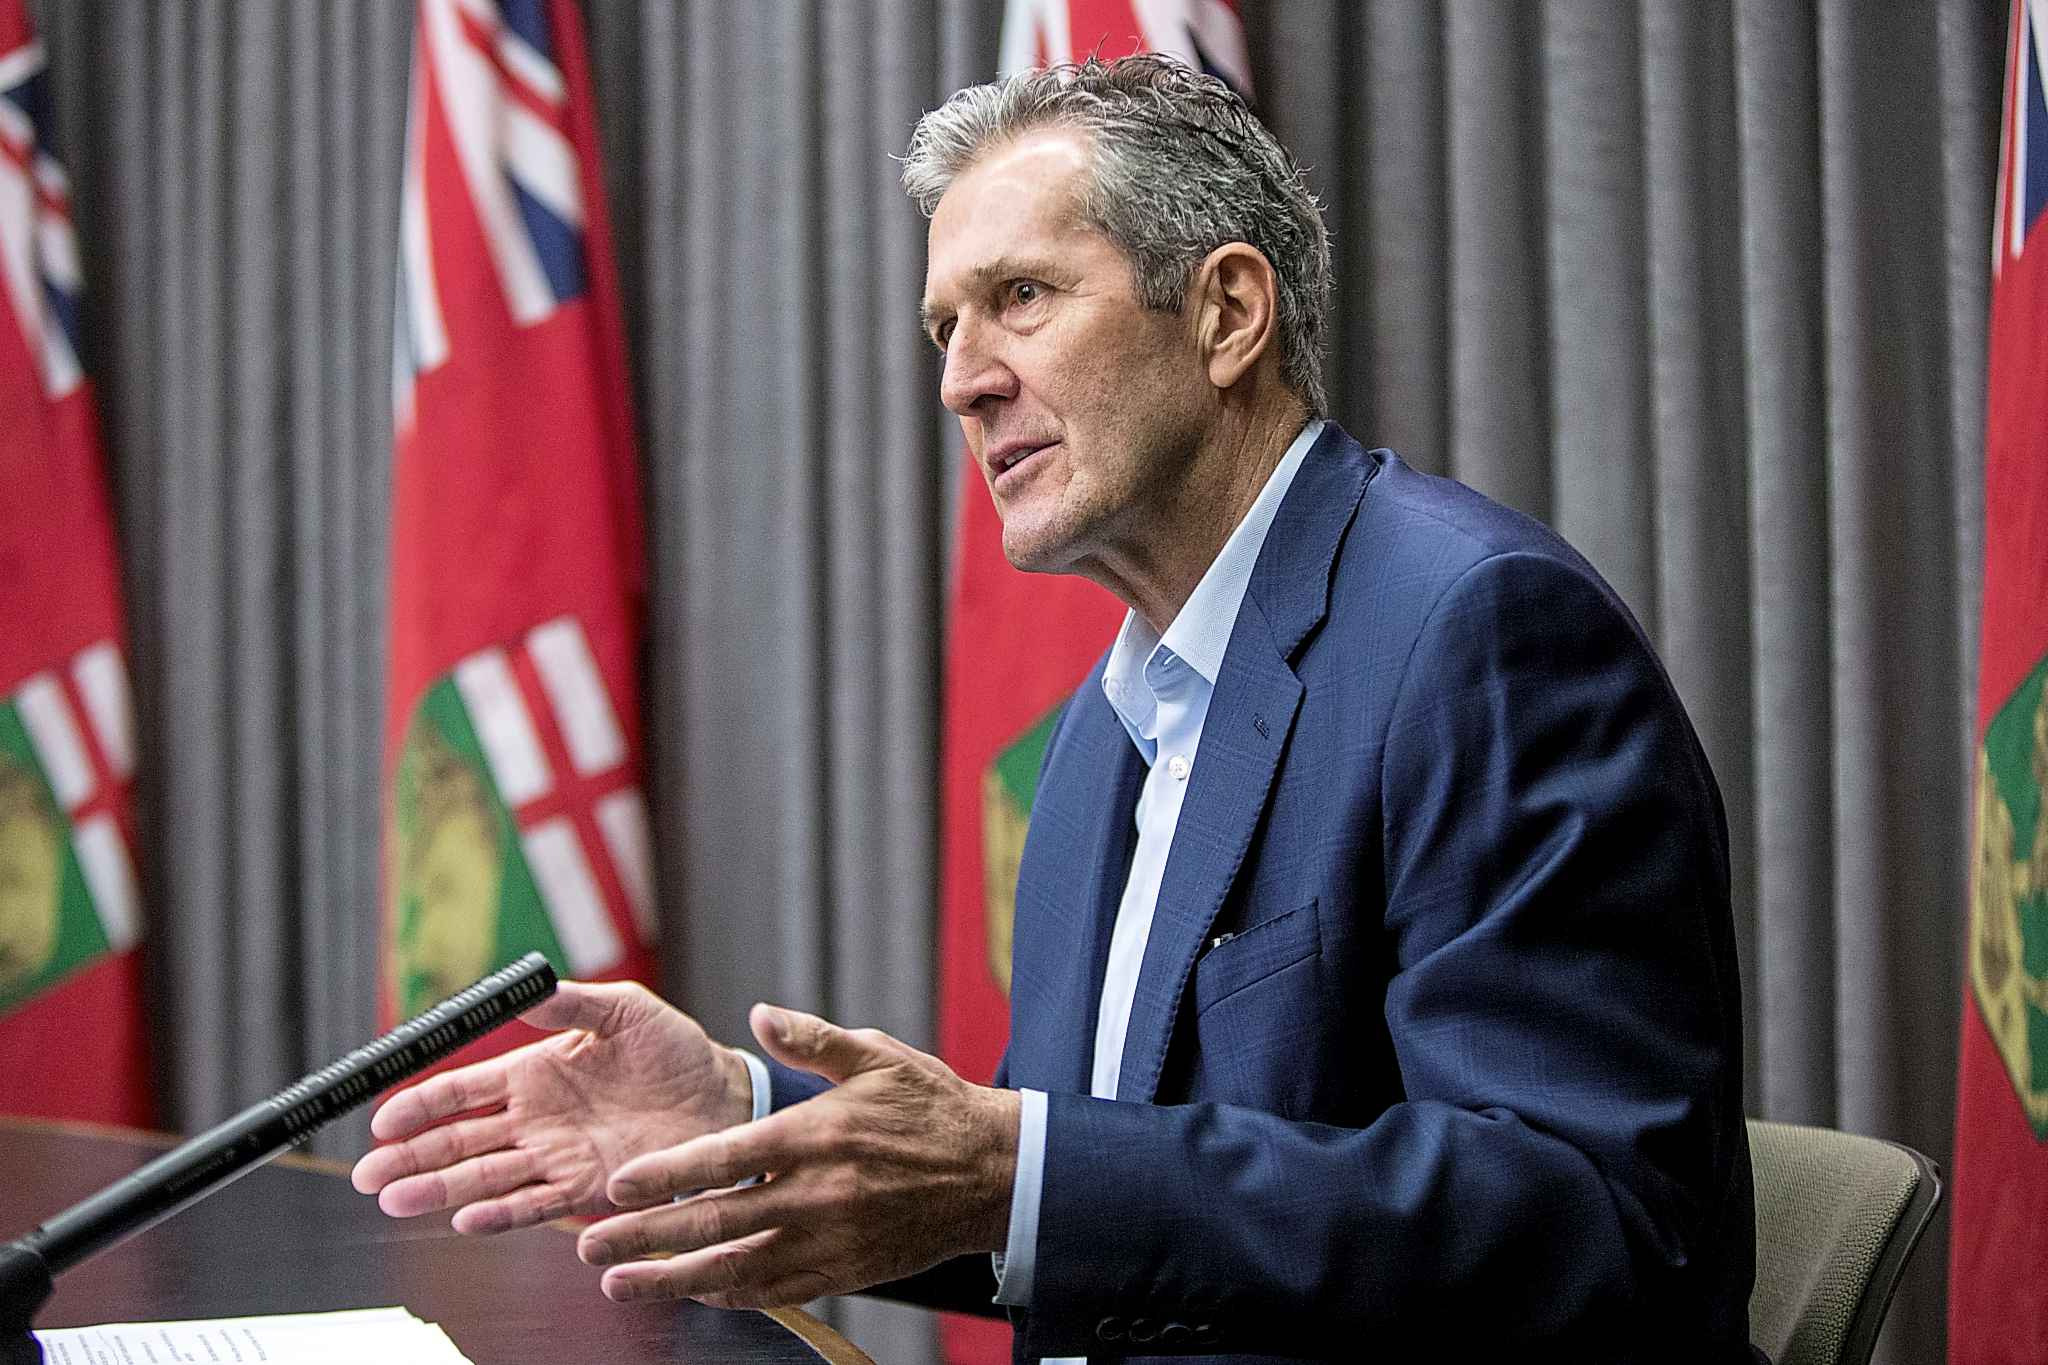 MIKAELA MACKENZIE / WINNIPEG FREE PRESS  Pallister stressed Friday he expects Manitobans will act in the public interest, and that his officials won't need to curtail civil liberties.